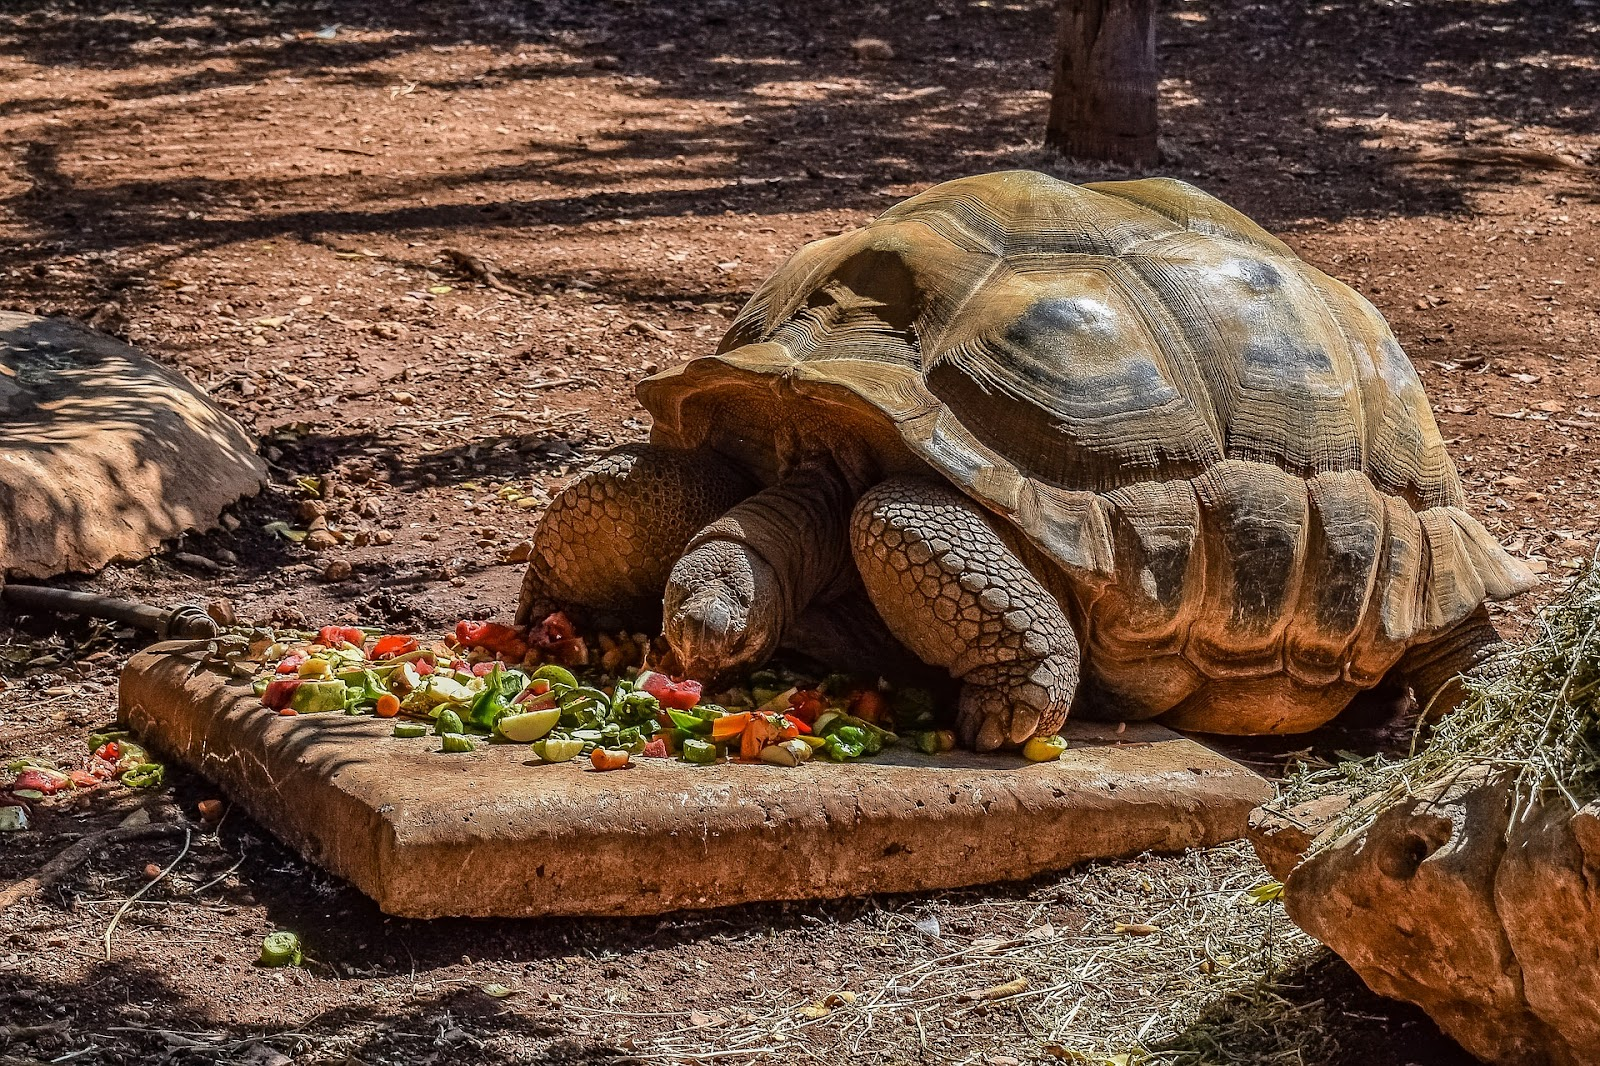 Tortoise eating fruits and vegetables